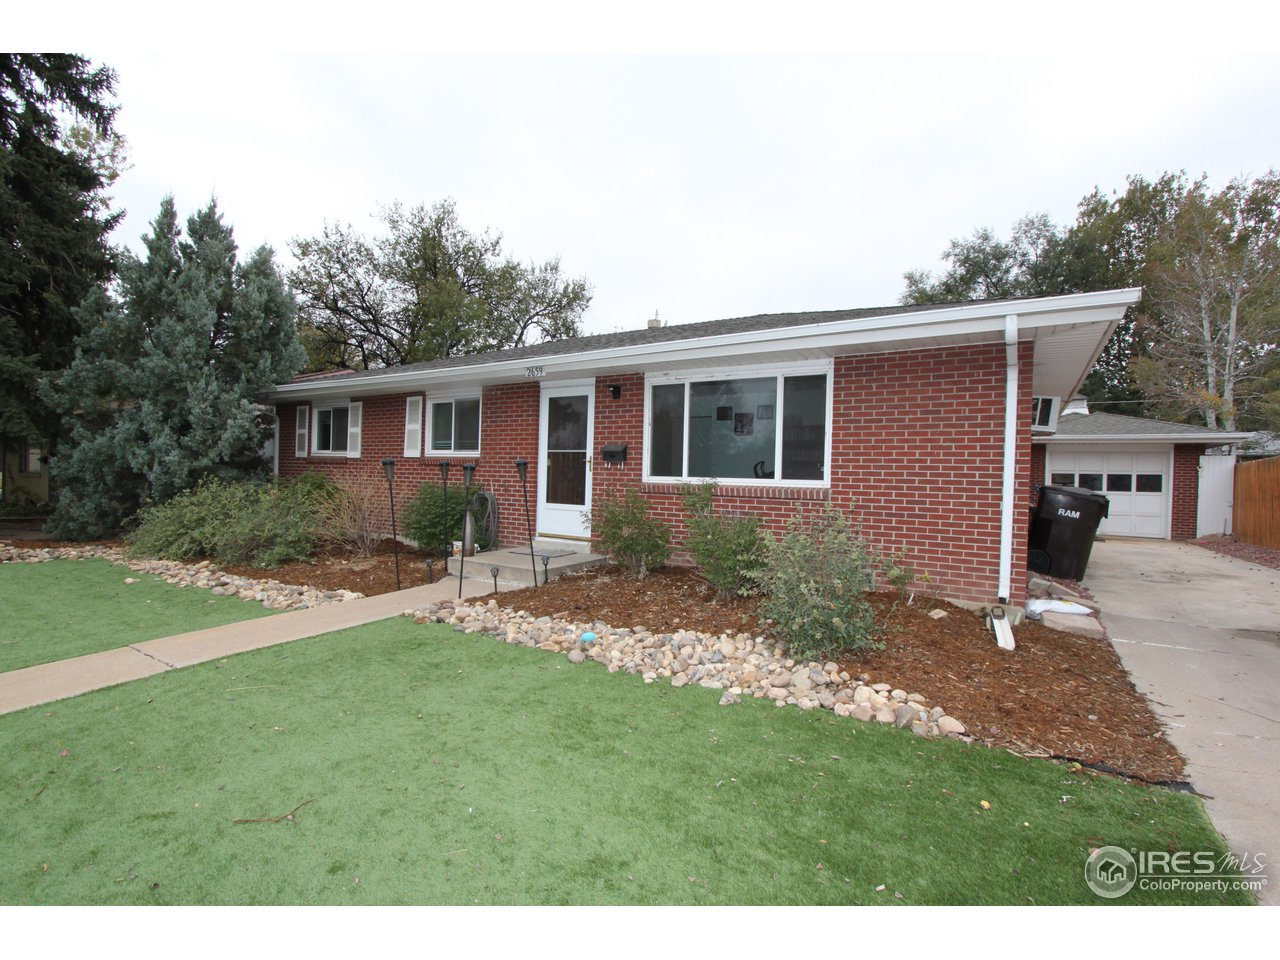 2659 12TH AVE, GREELEY, CO 80631